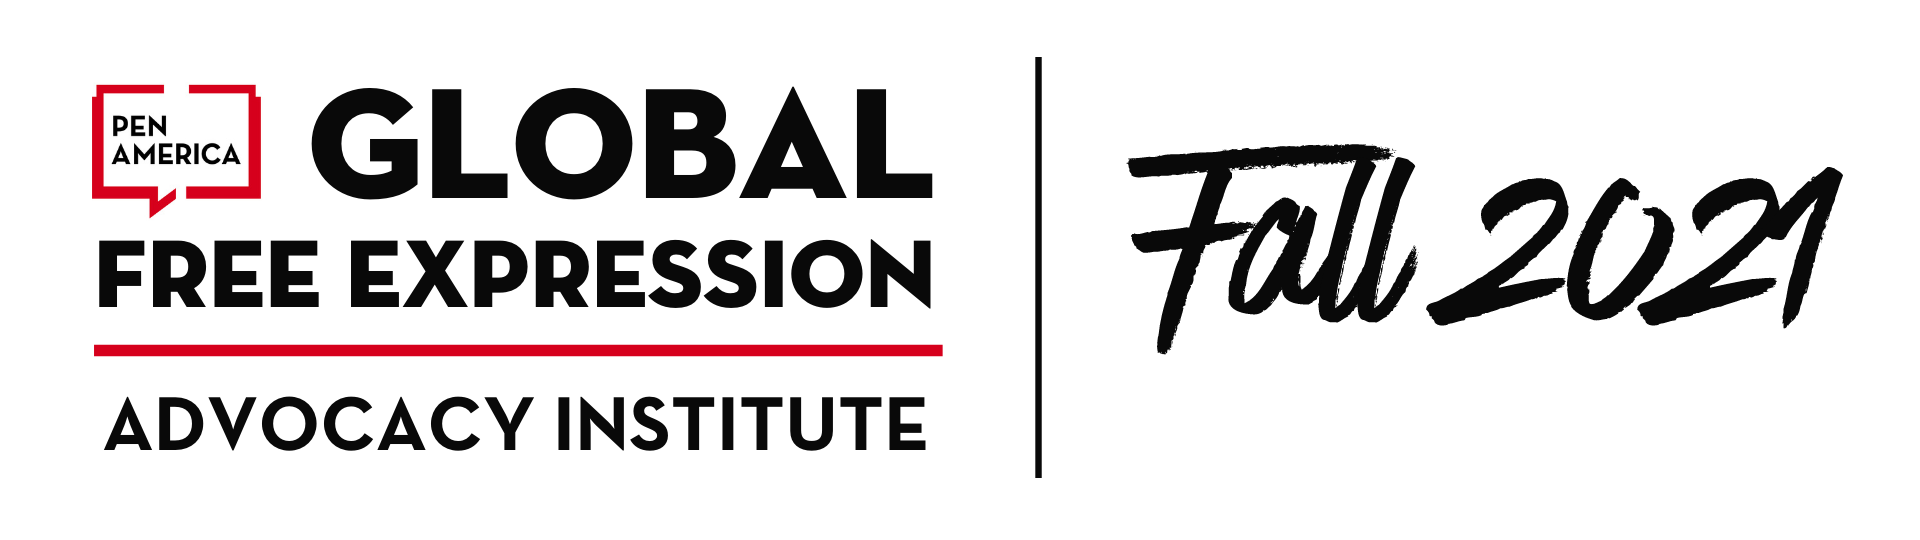 Fall 2021 Global Free Expression Advocacy Institute Hero Image